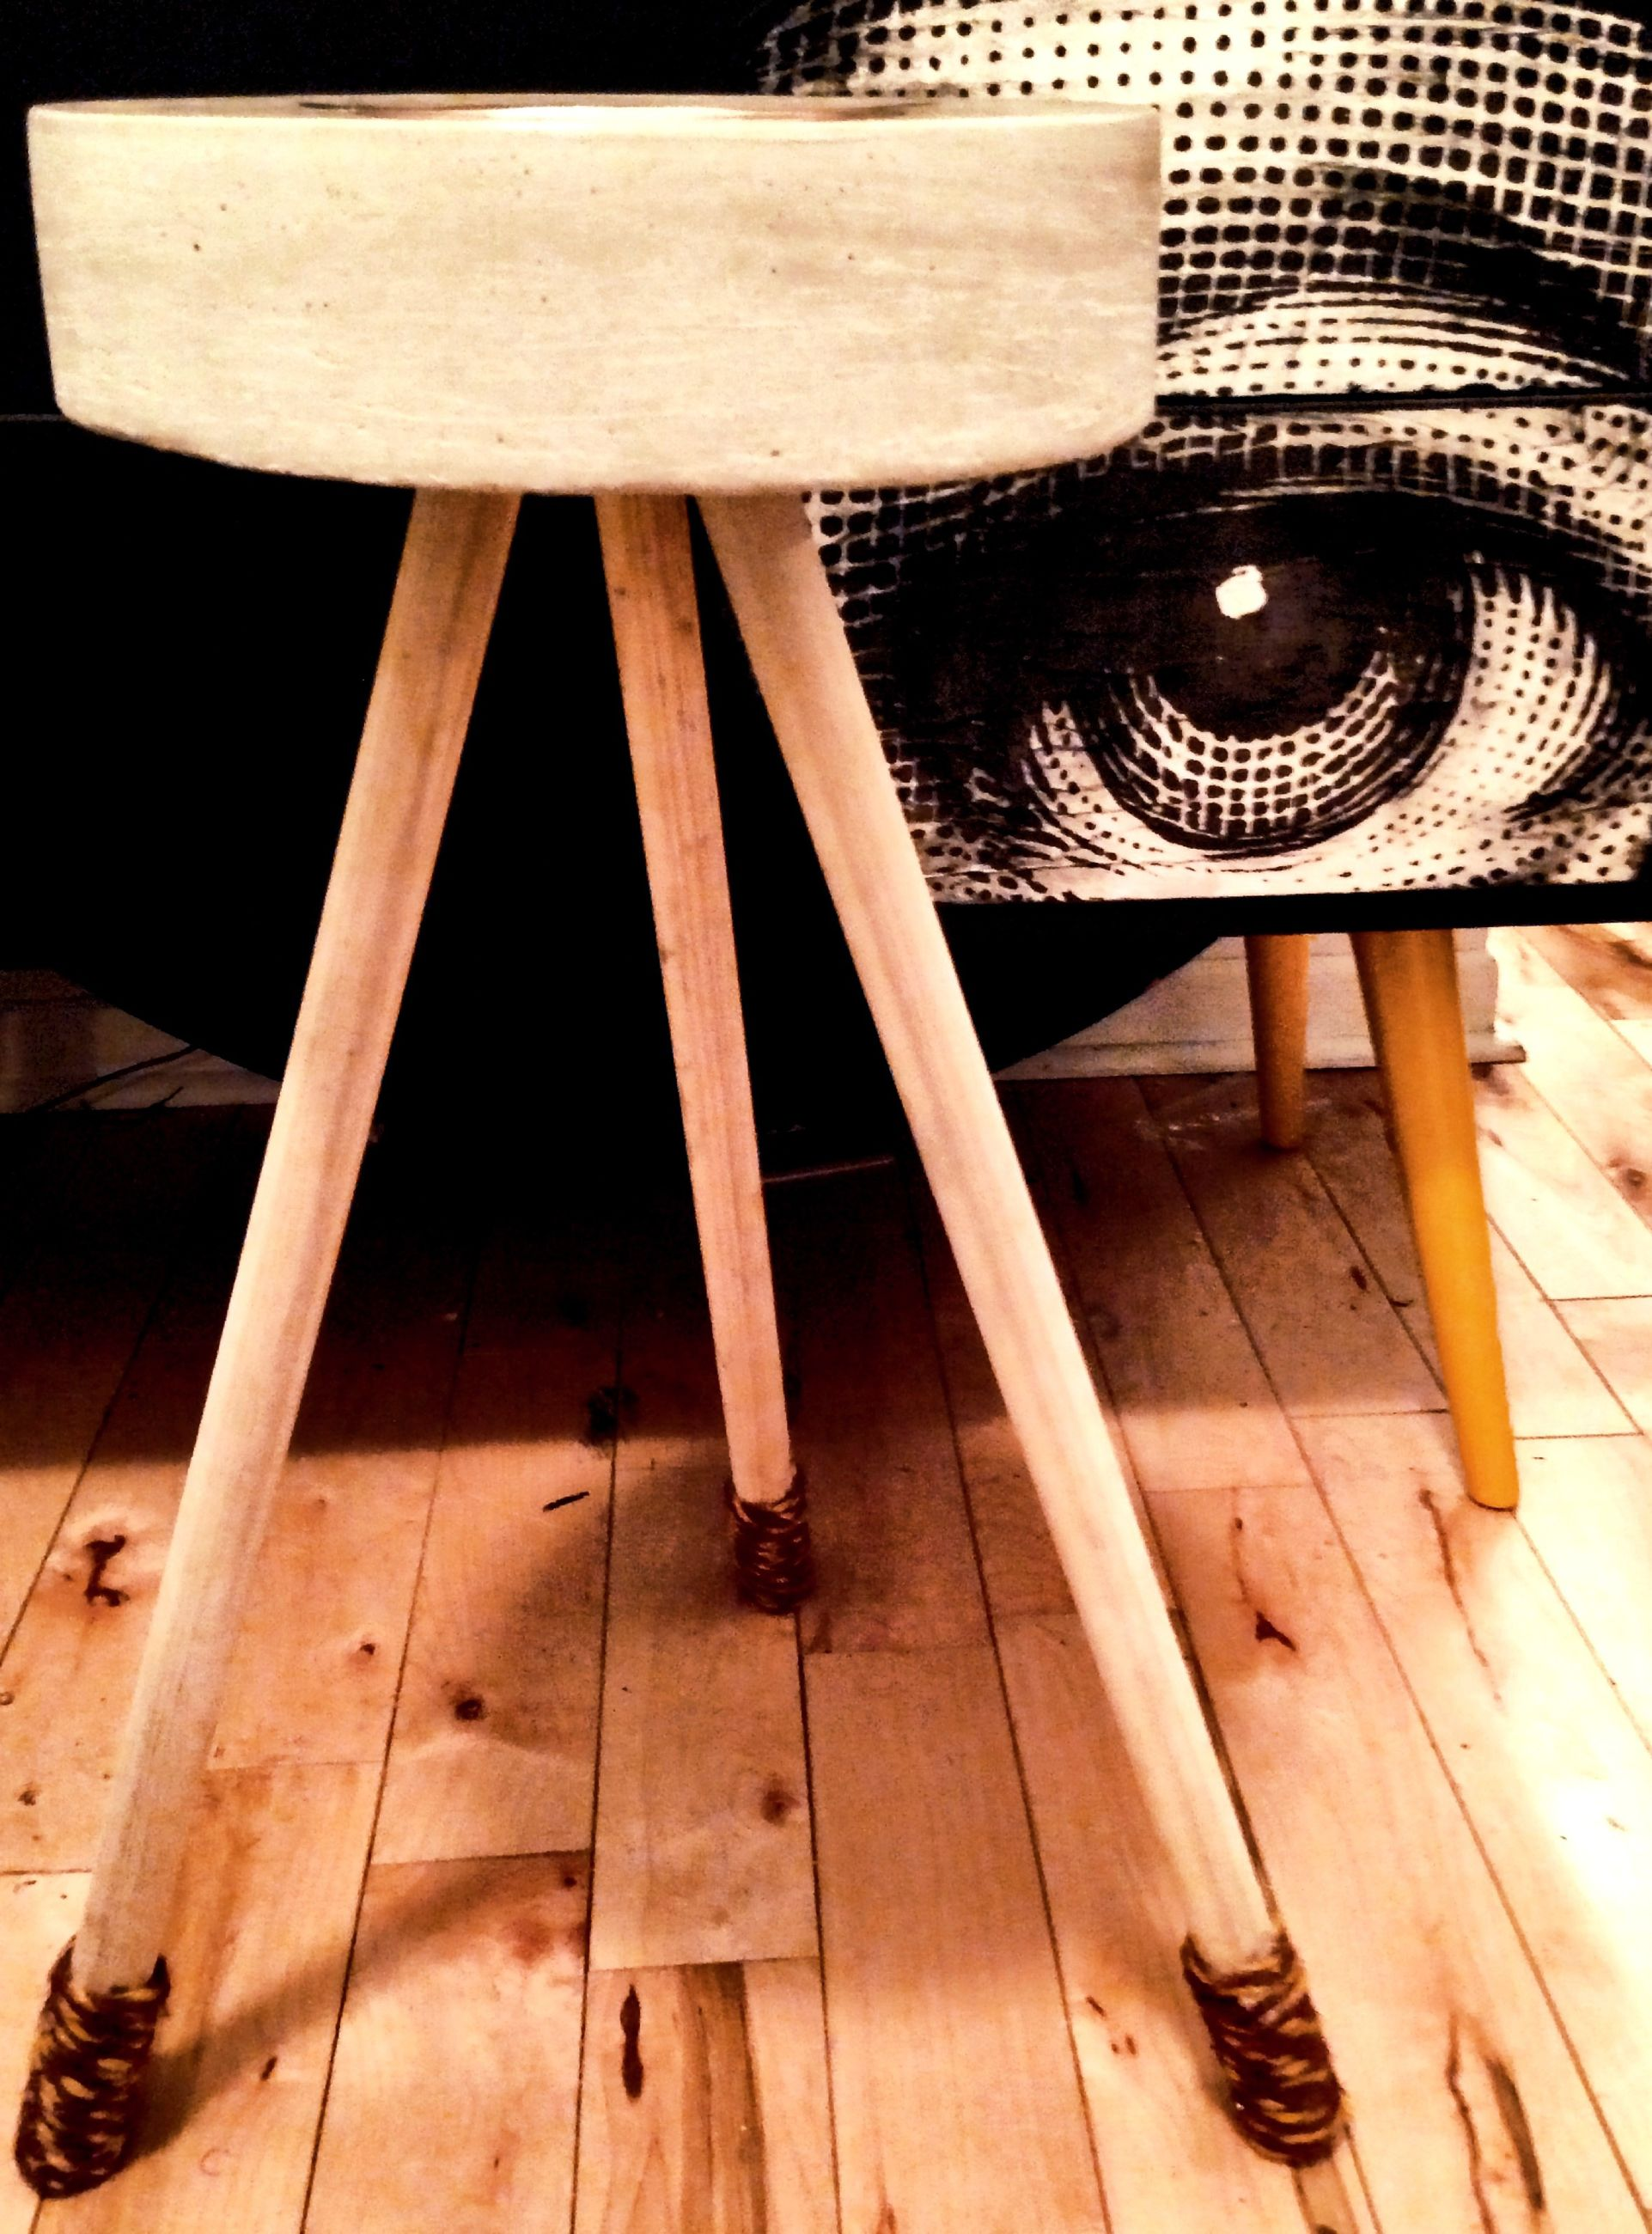 wood - material, wooden, wood, high angle view, indoors, plank, close-up, table, hardwood floor, metal, no people, bench, still life, chair, pattern, floorboard, boardwalk, part of, day, directly above